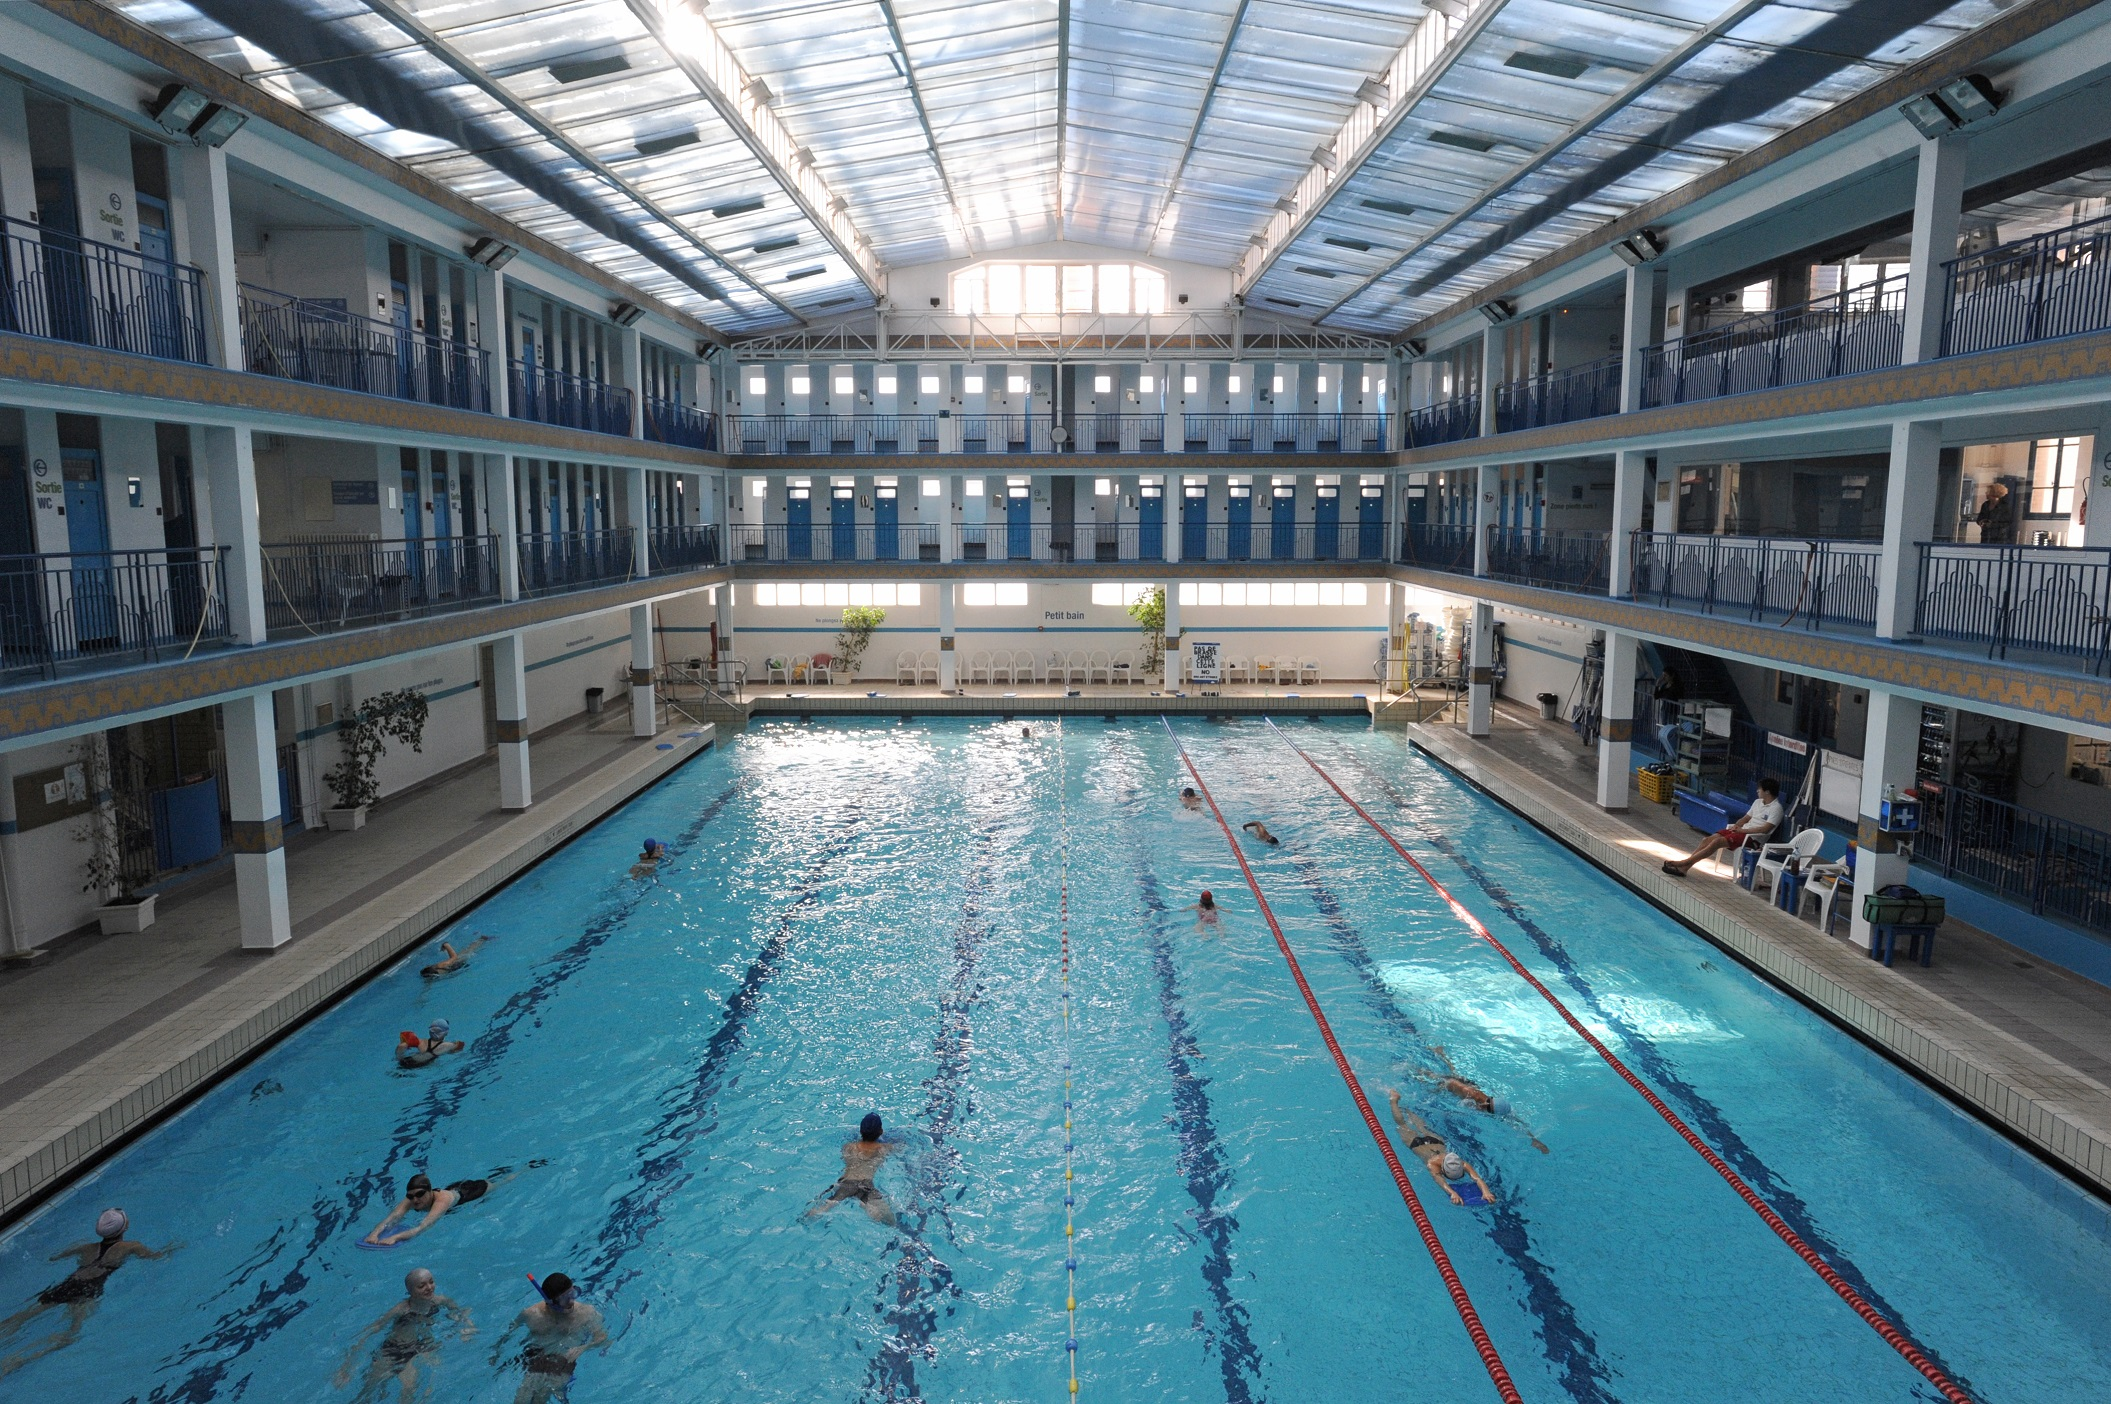 Les piscines du 5e arrondissement mairie du 5e for Piscine pontoise